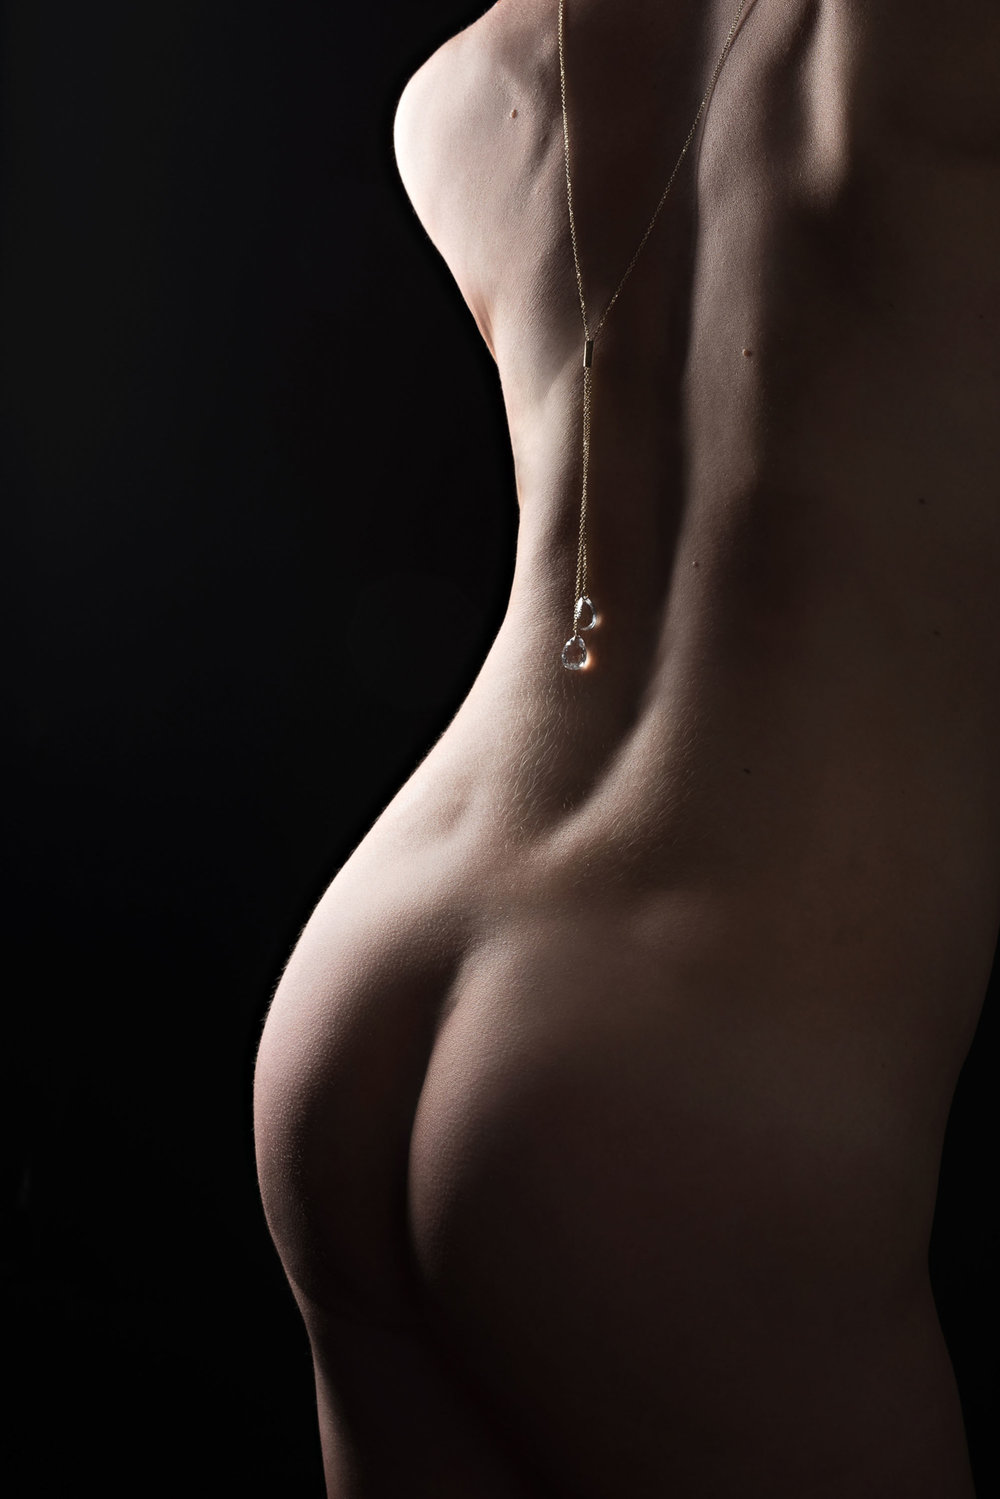 Bodyscape photo of woman's back